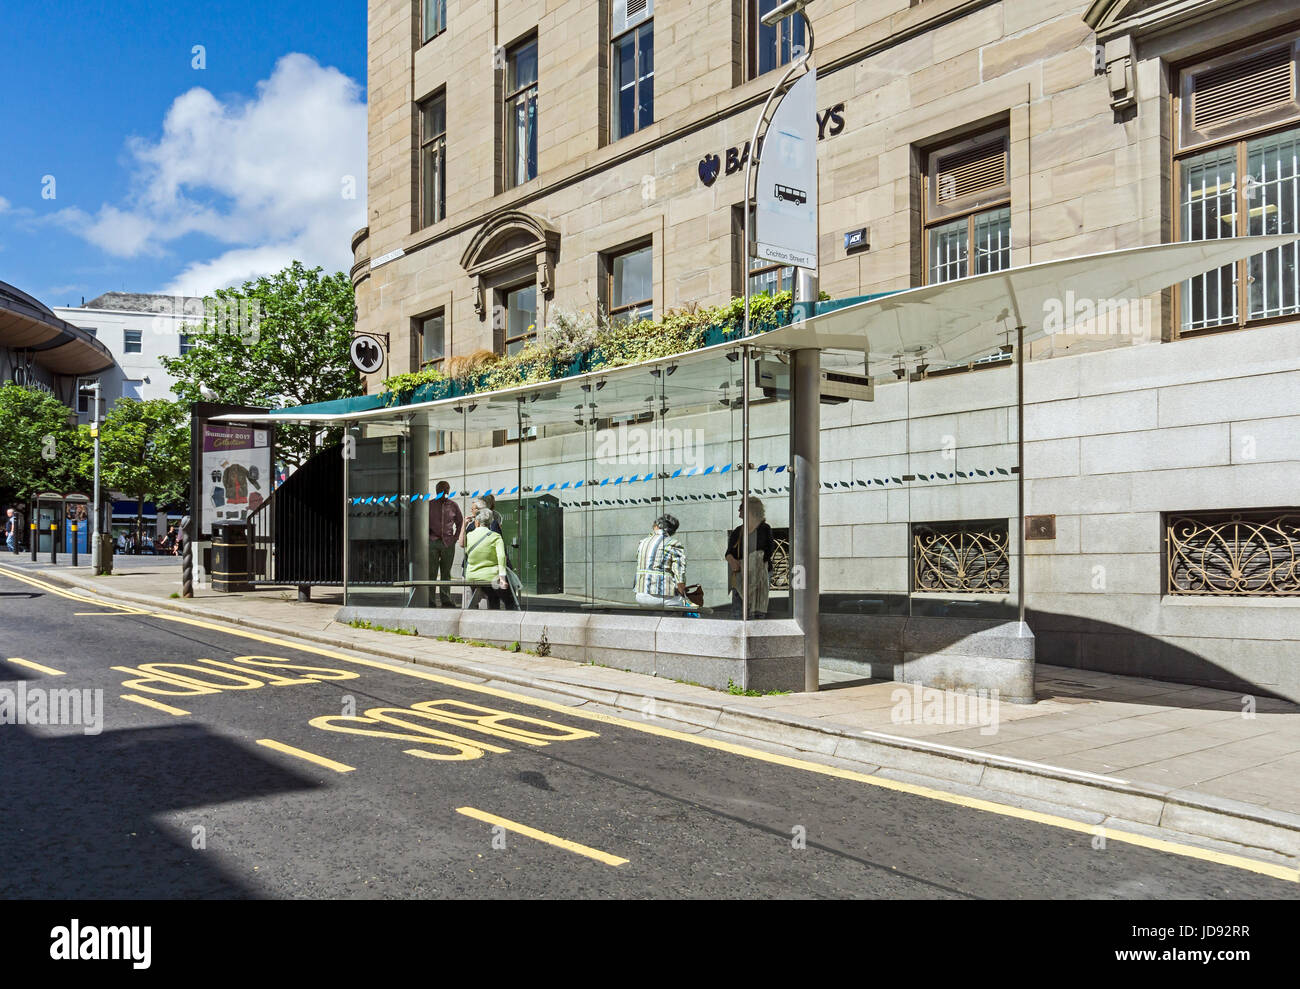 Bus shelters at Barclays Bank in Crichton Street in Dundee Tayside Scotland UK - Stock Image